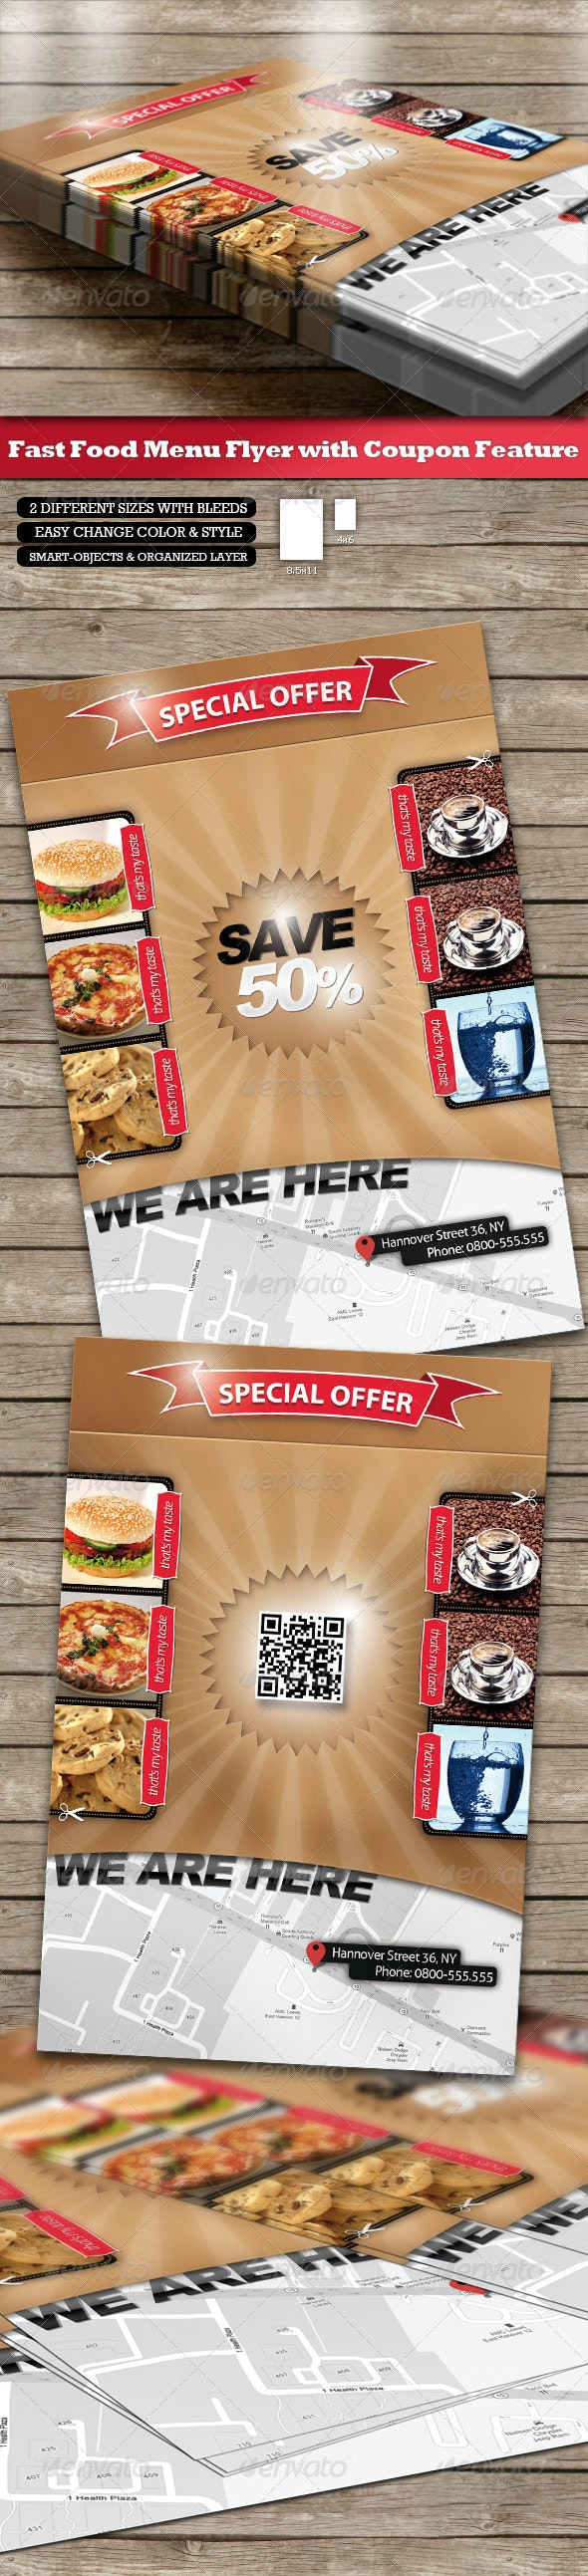 Fast Food Menu Flyer - Coupon Function and QR-Code - Restaurant Flyers